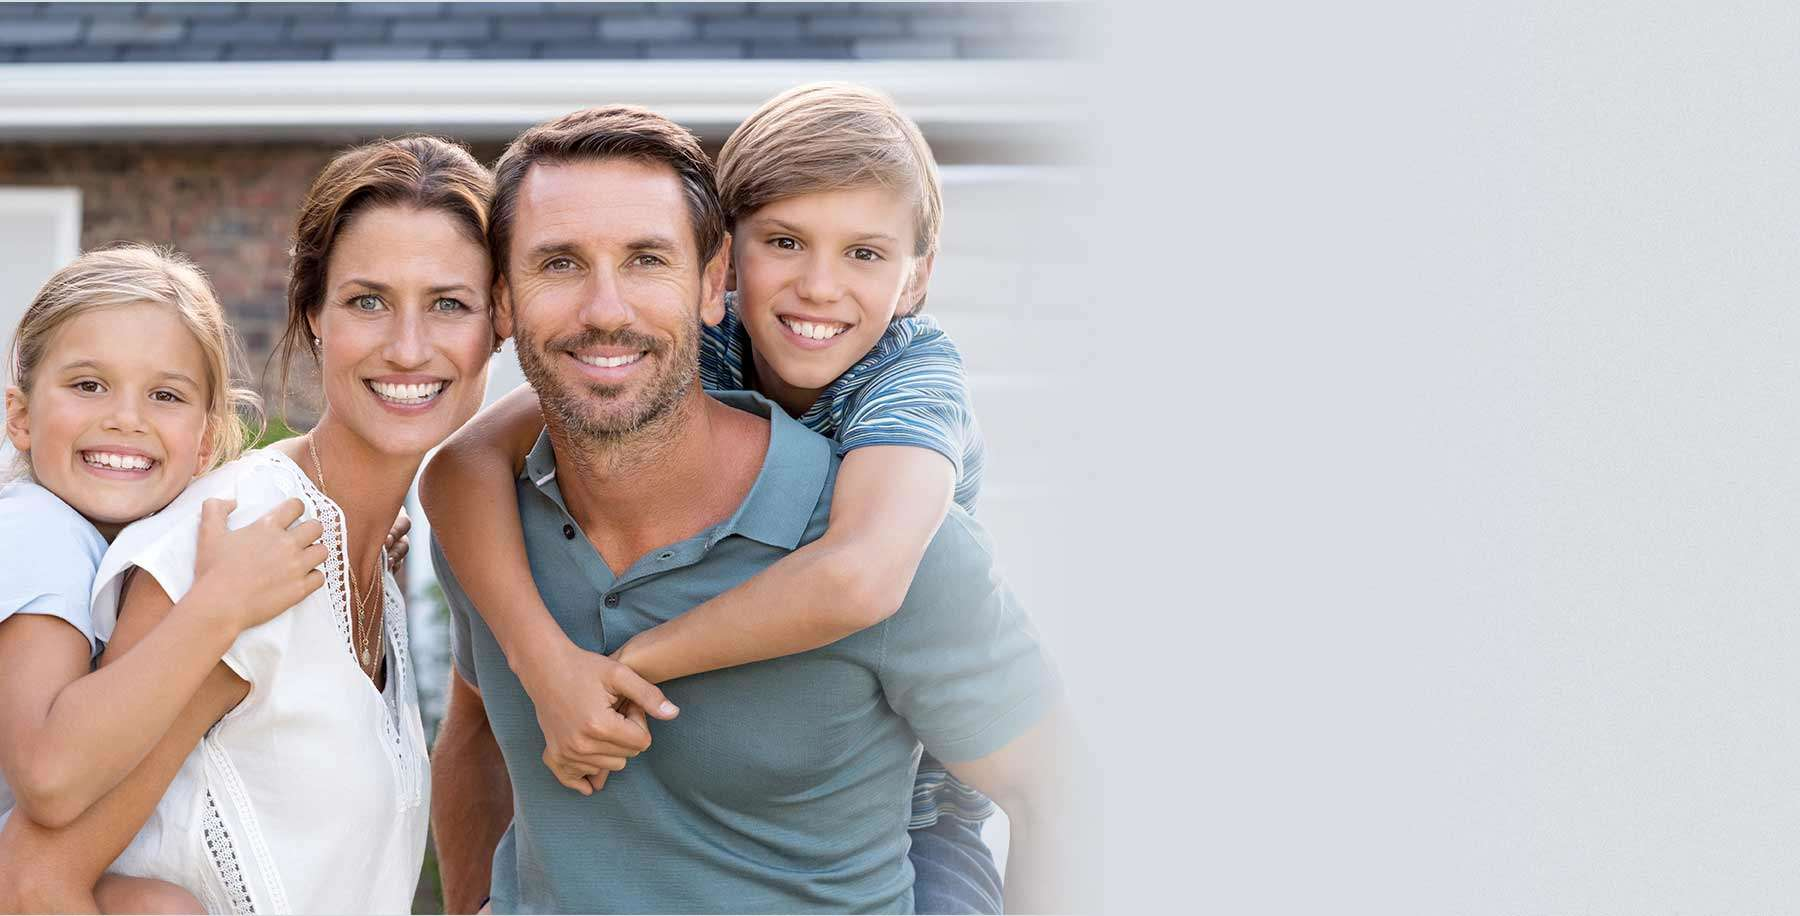 Gentle Dentistry & Personalized Care